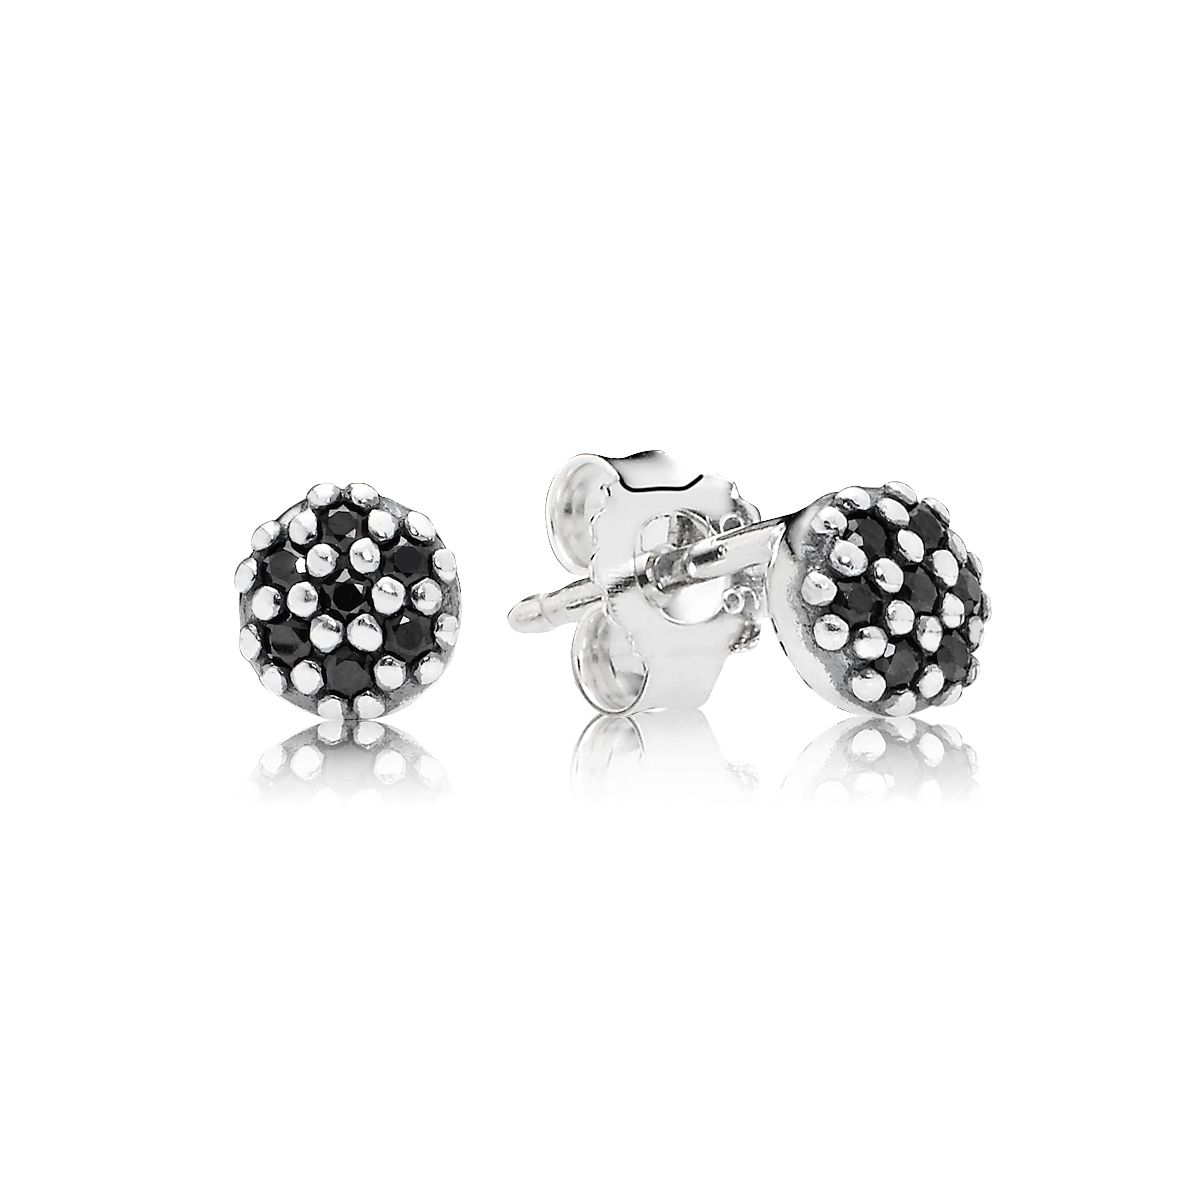 Pave silver stud earring with black crystal